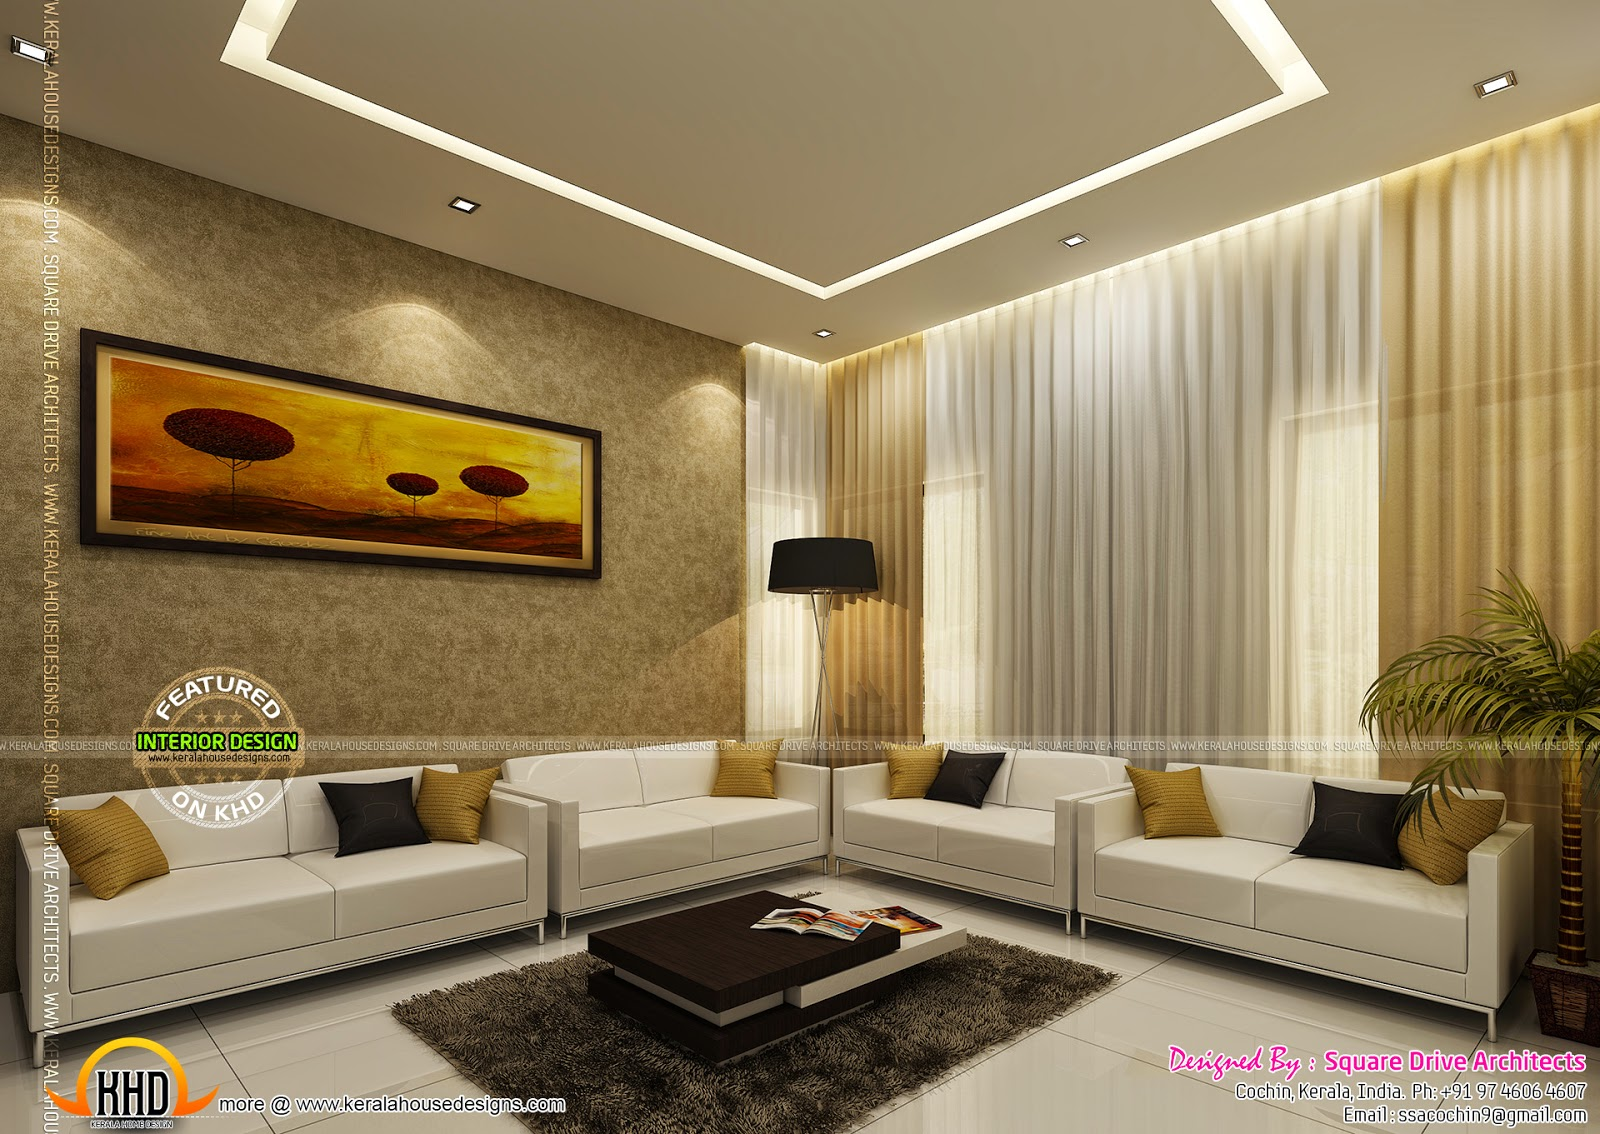 Home interiors designs kerala home design and floor plans - Interior living room design ideas ...